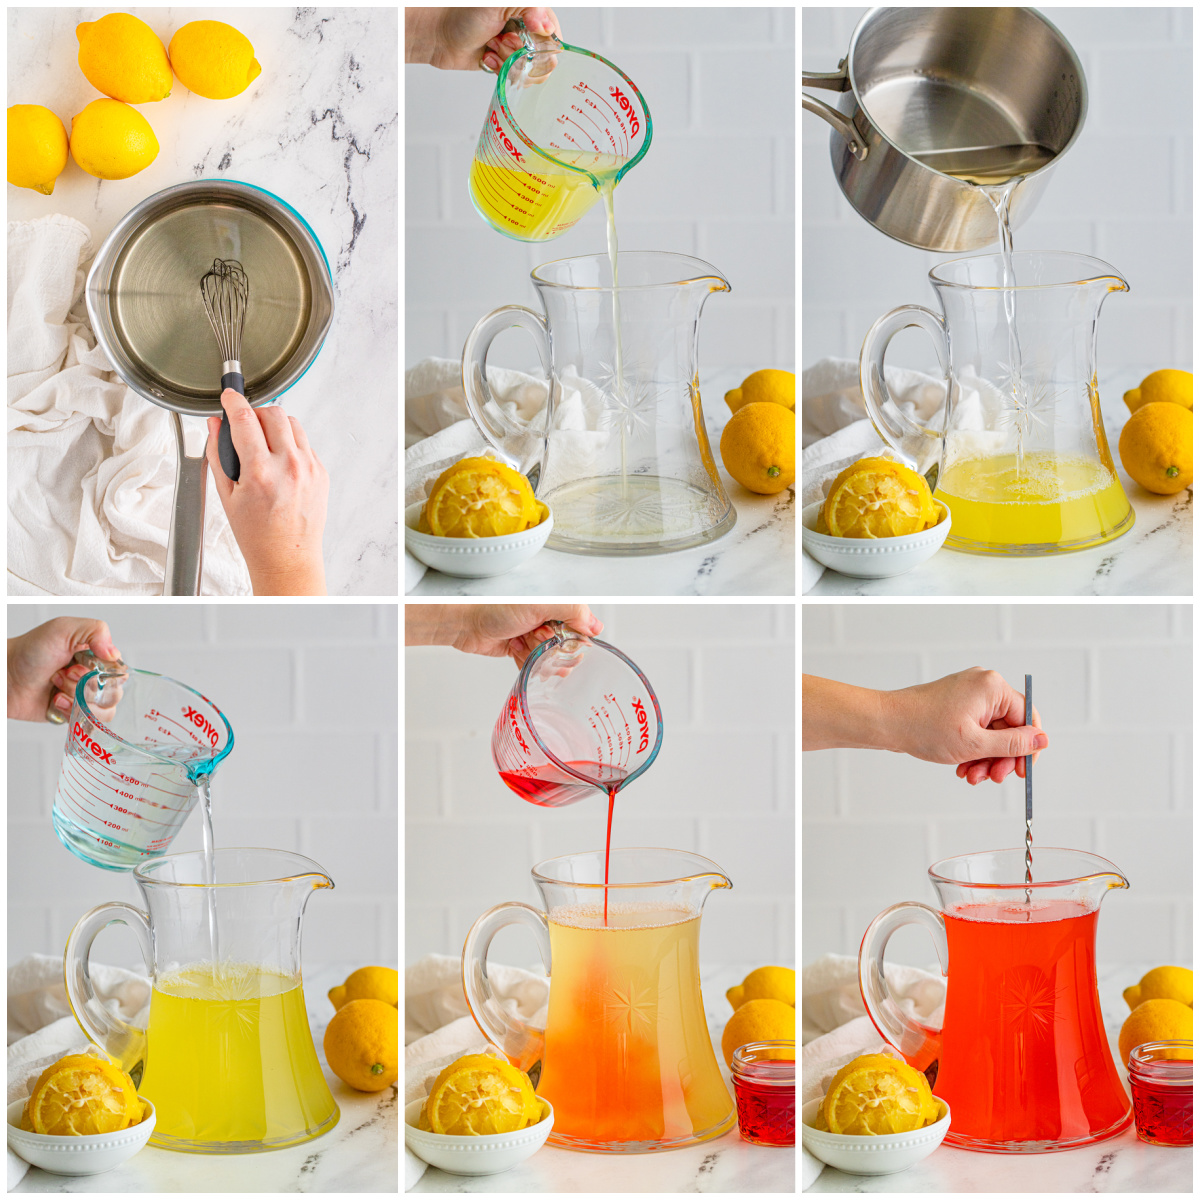 Step by step photos on how to make a Pink Lemonade Recipe